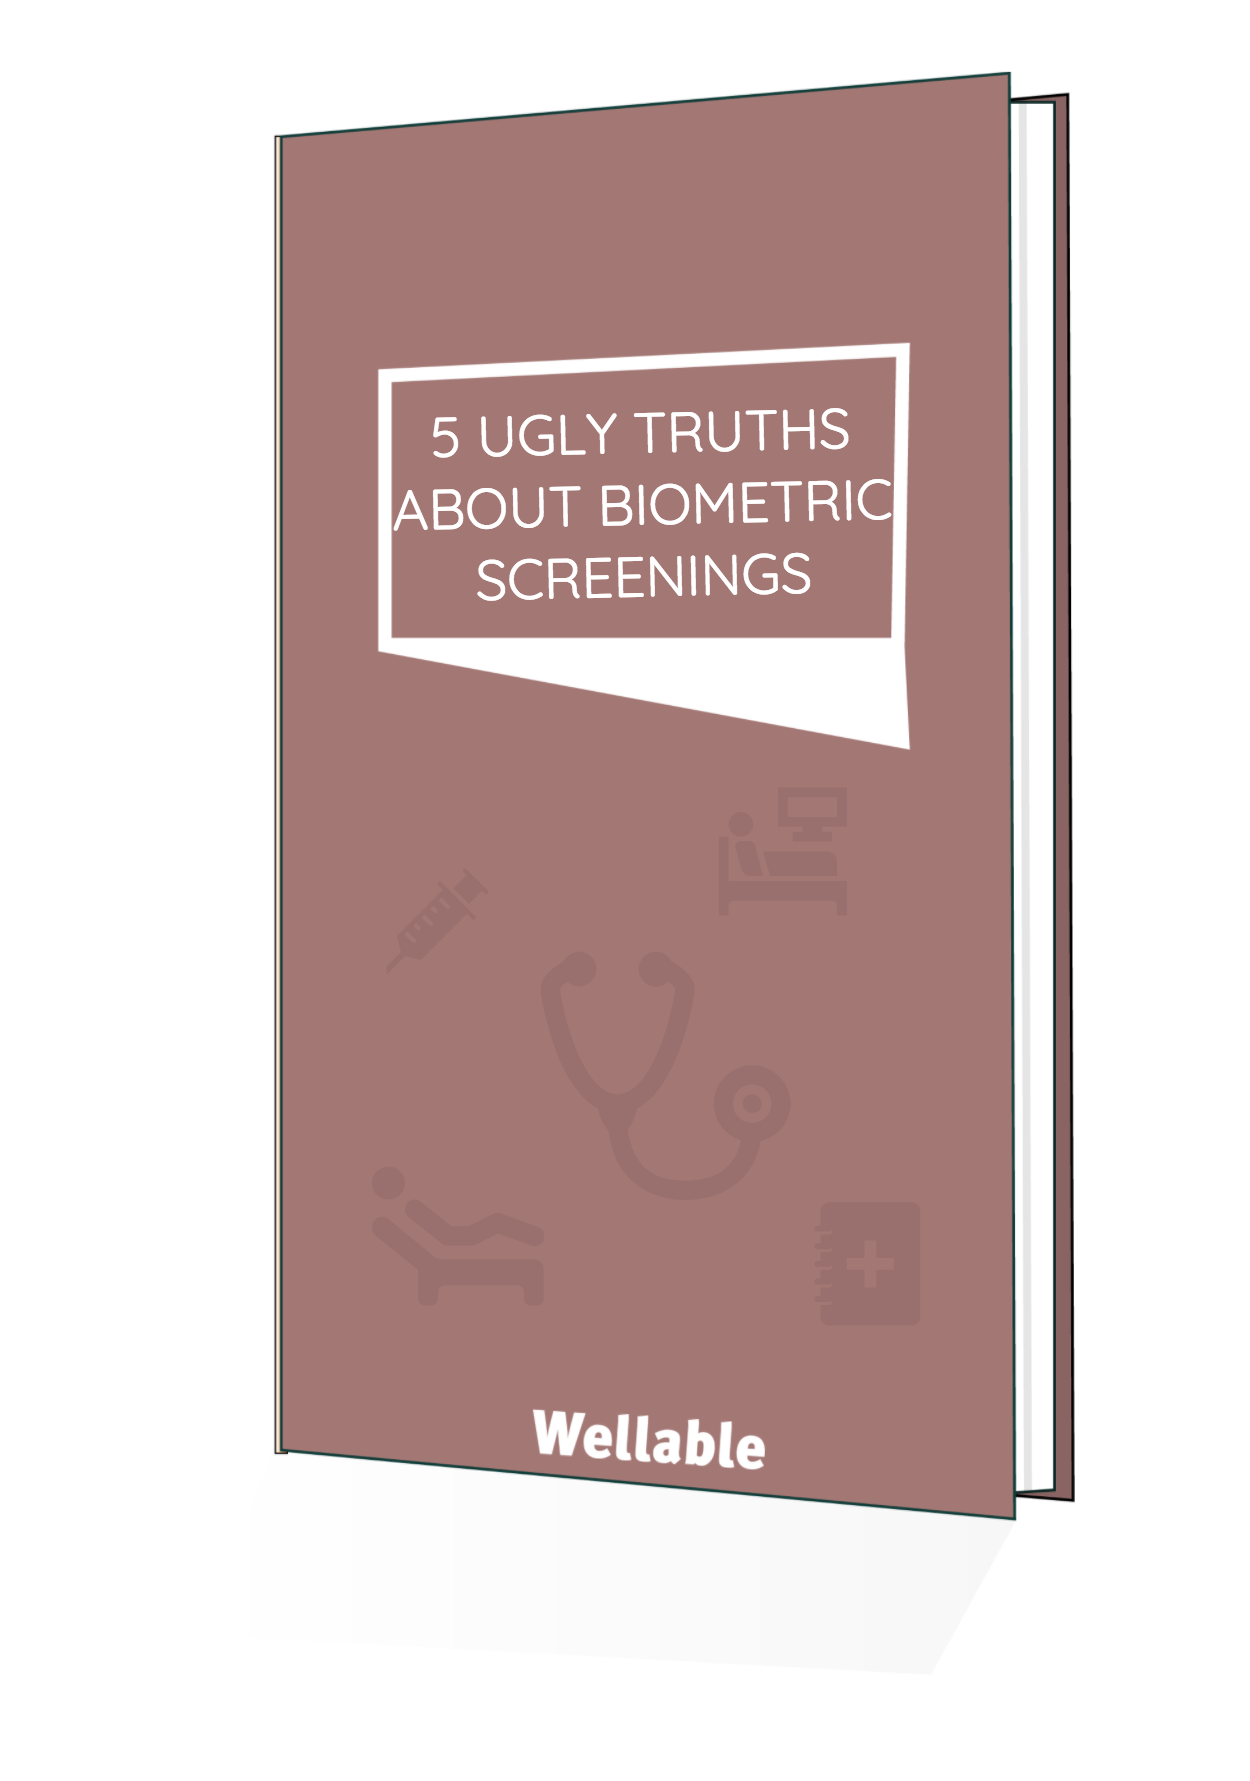 biometric screening ebook cover.png